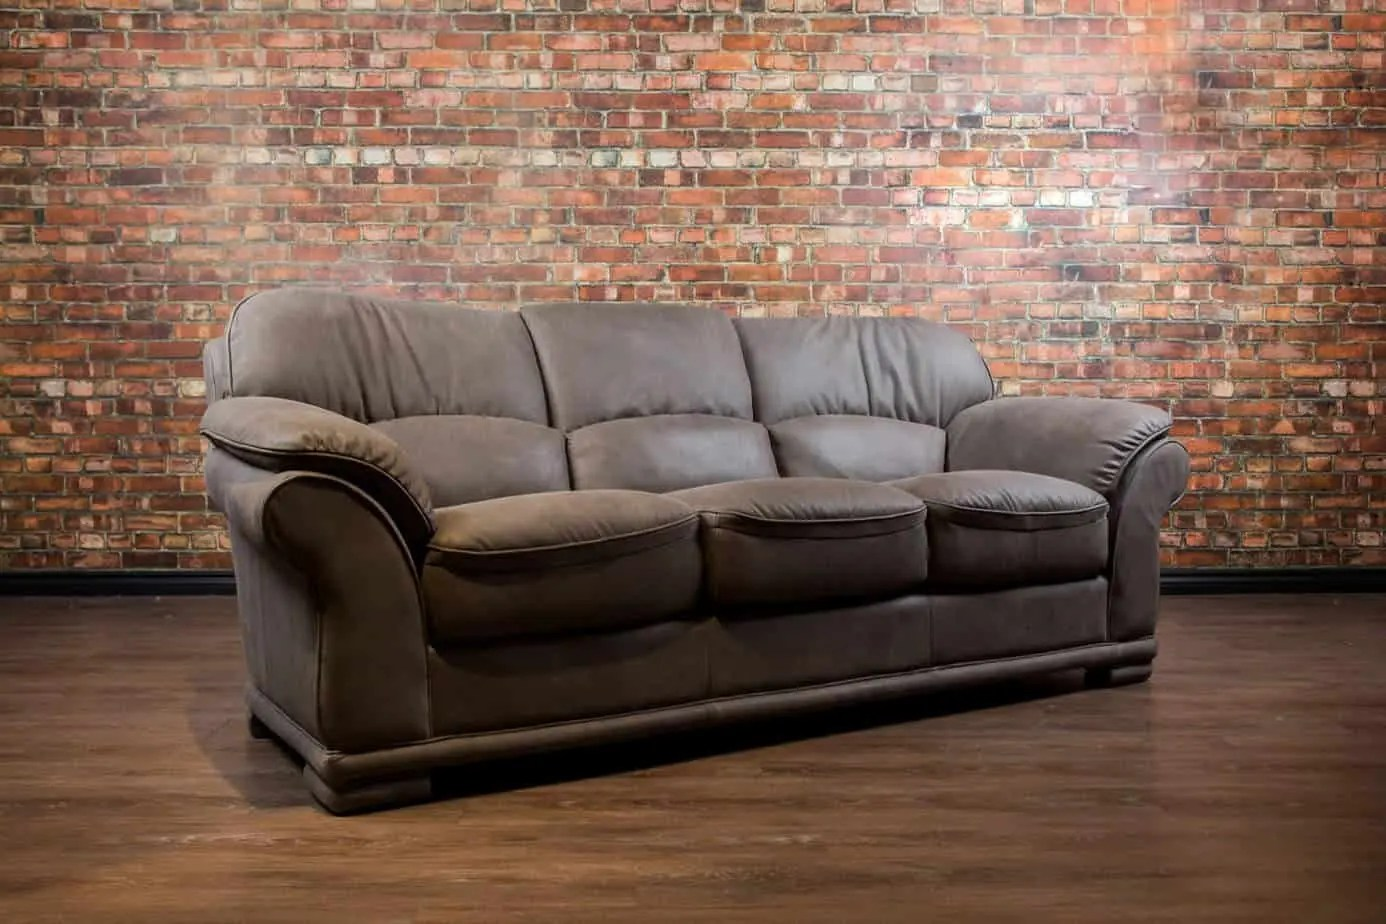 Leather Couch Canada The Caledon Leather Sofa Canada 39s Boss Leather Sofas And